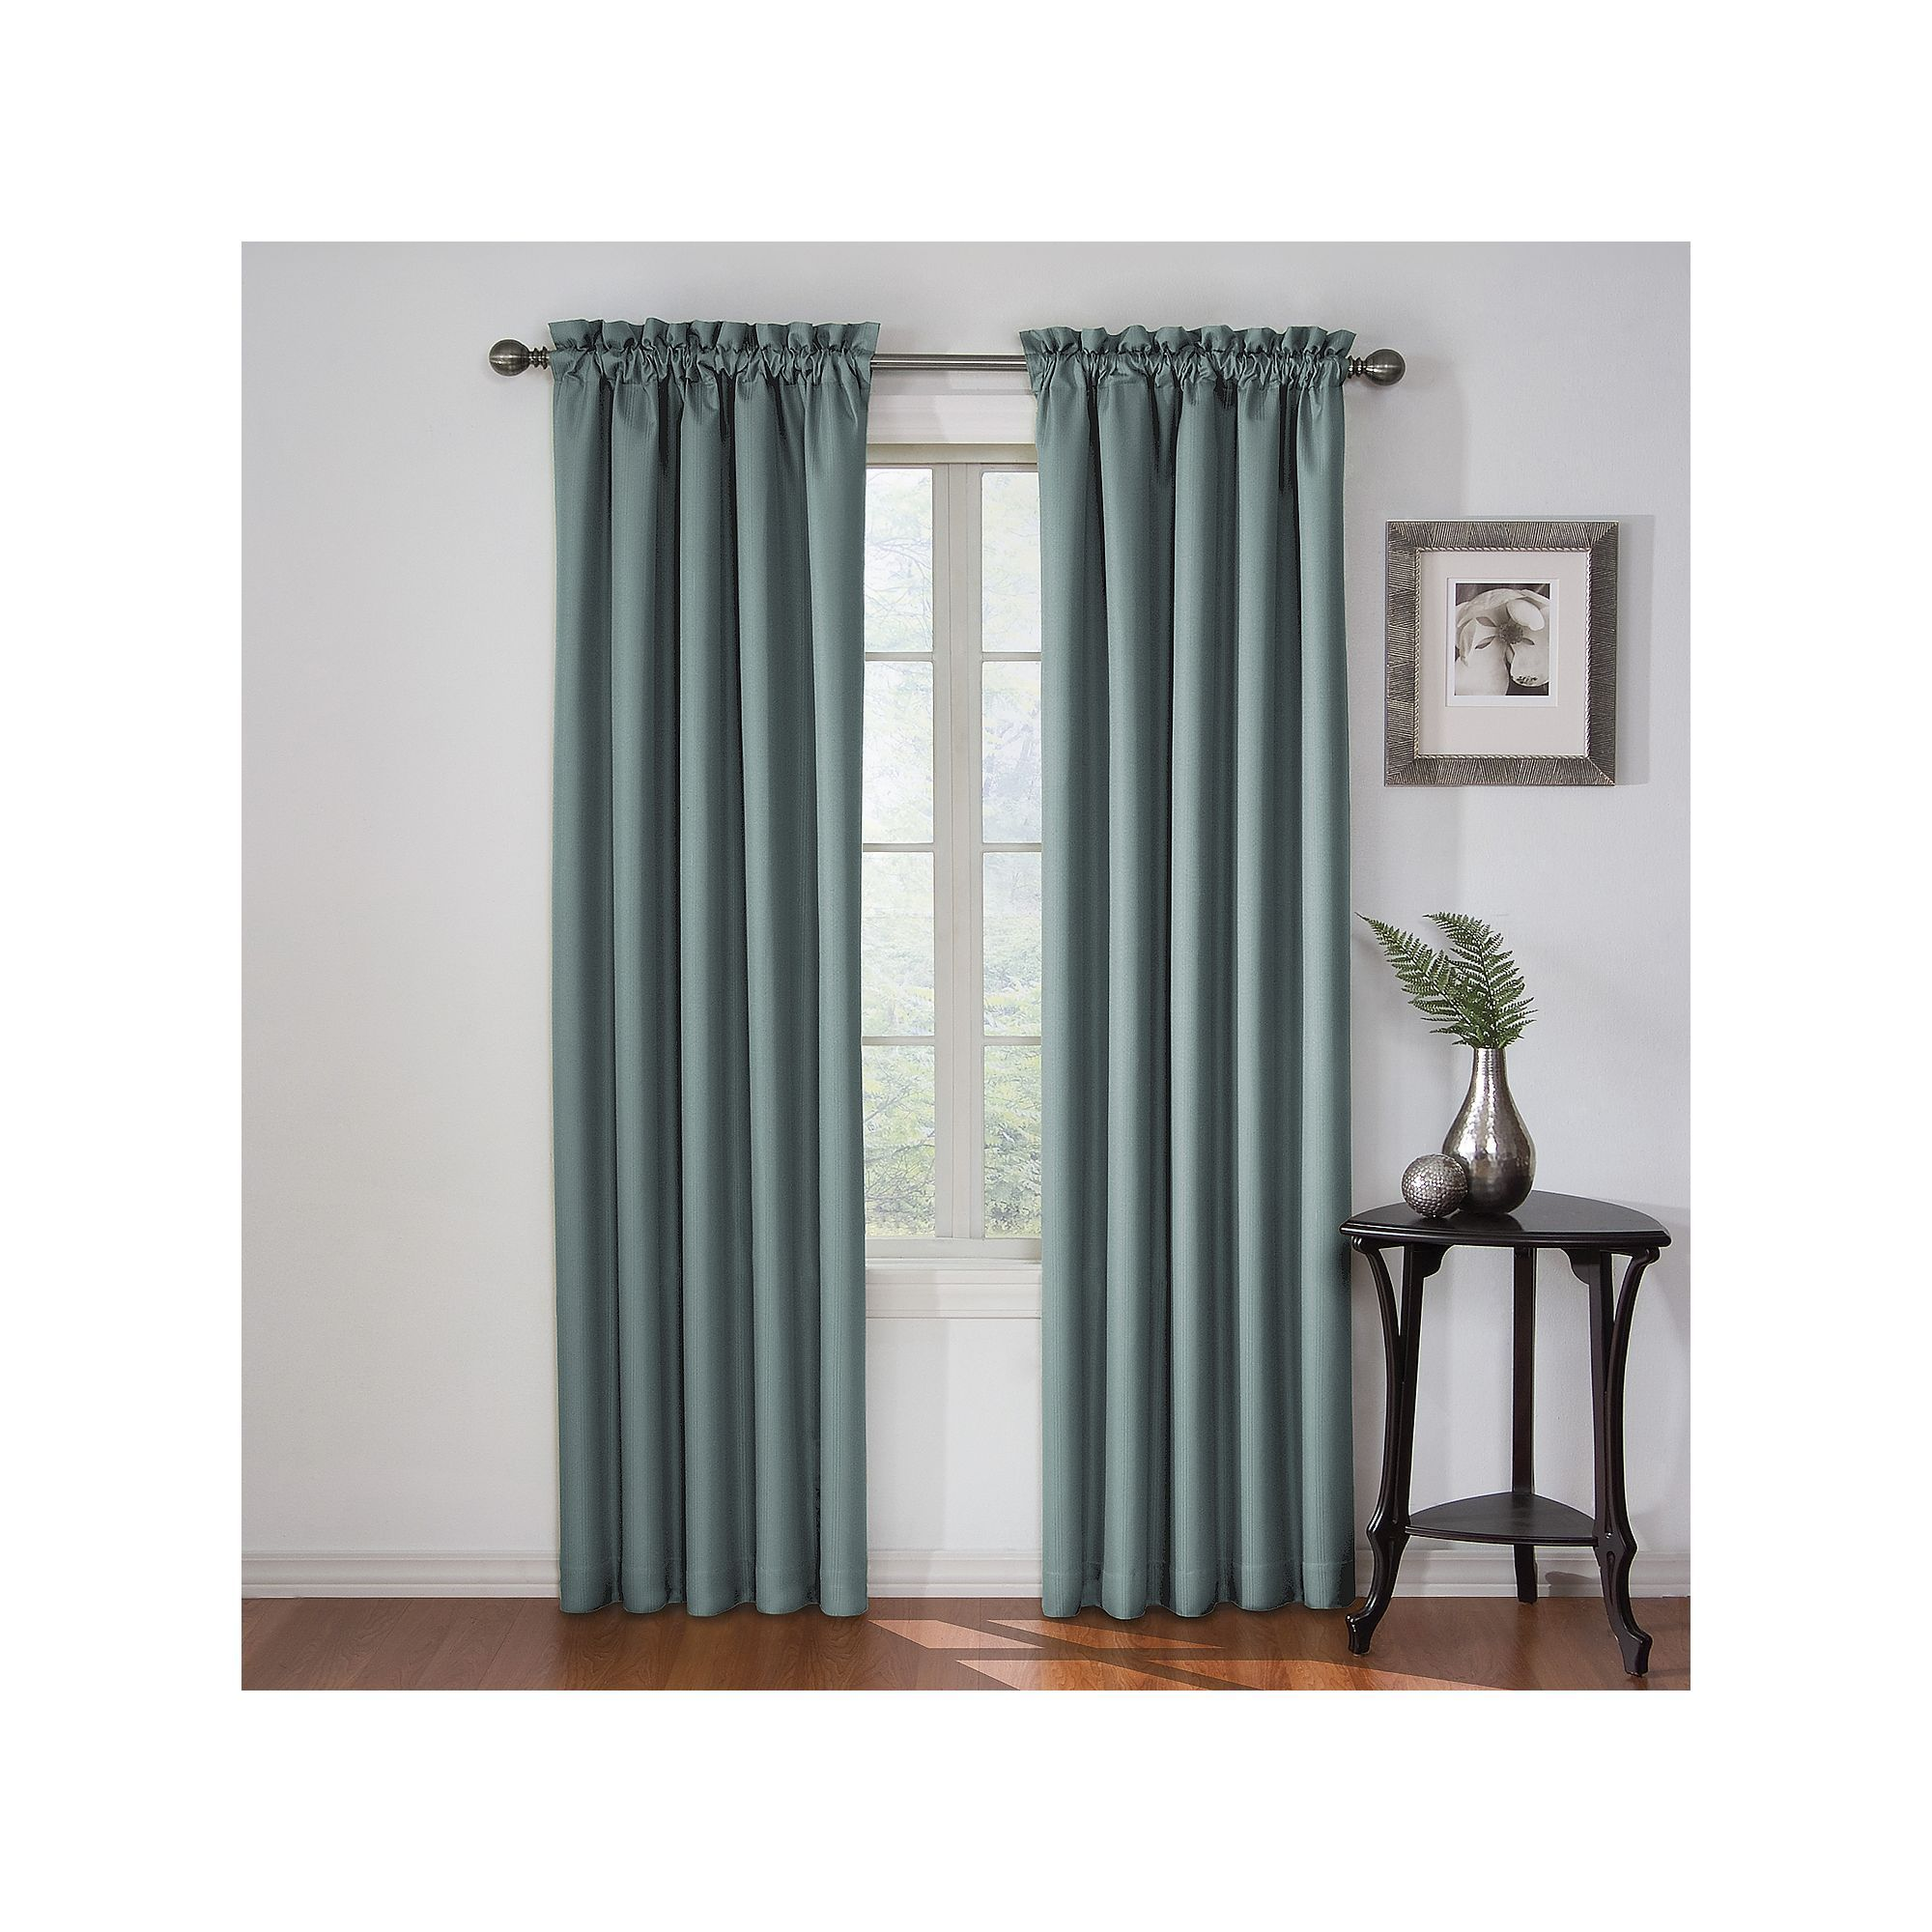 94 Inch Blackout Curtains Eclipse Corinne Thermaback Blackout Curtain Blue Products